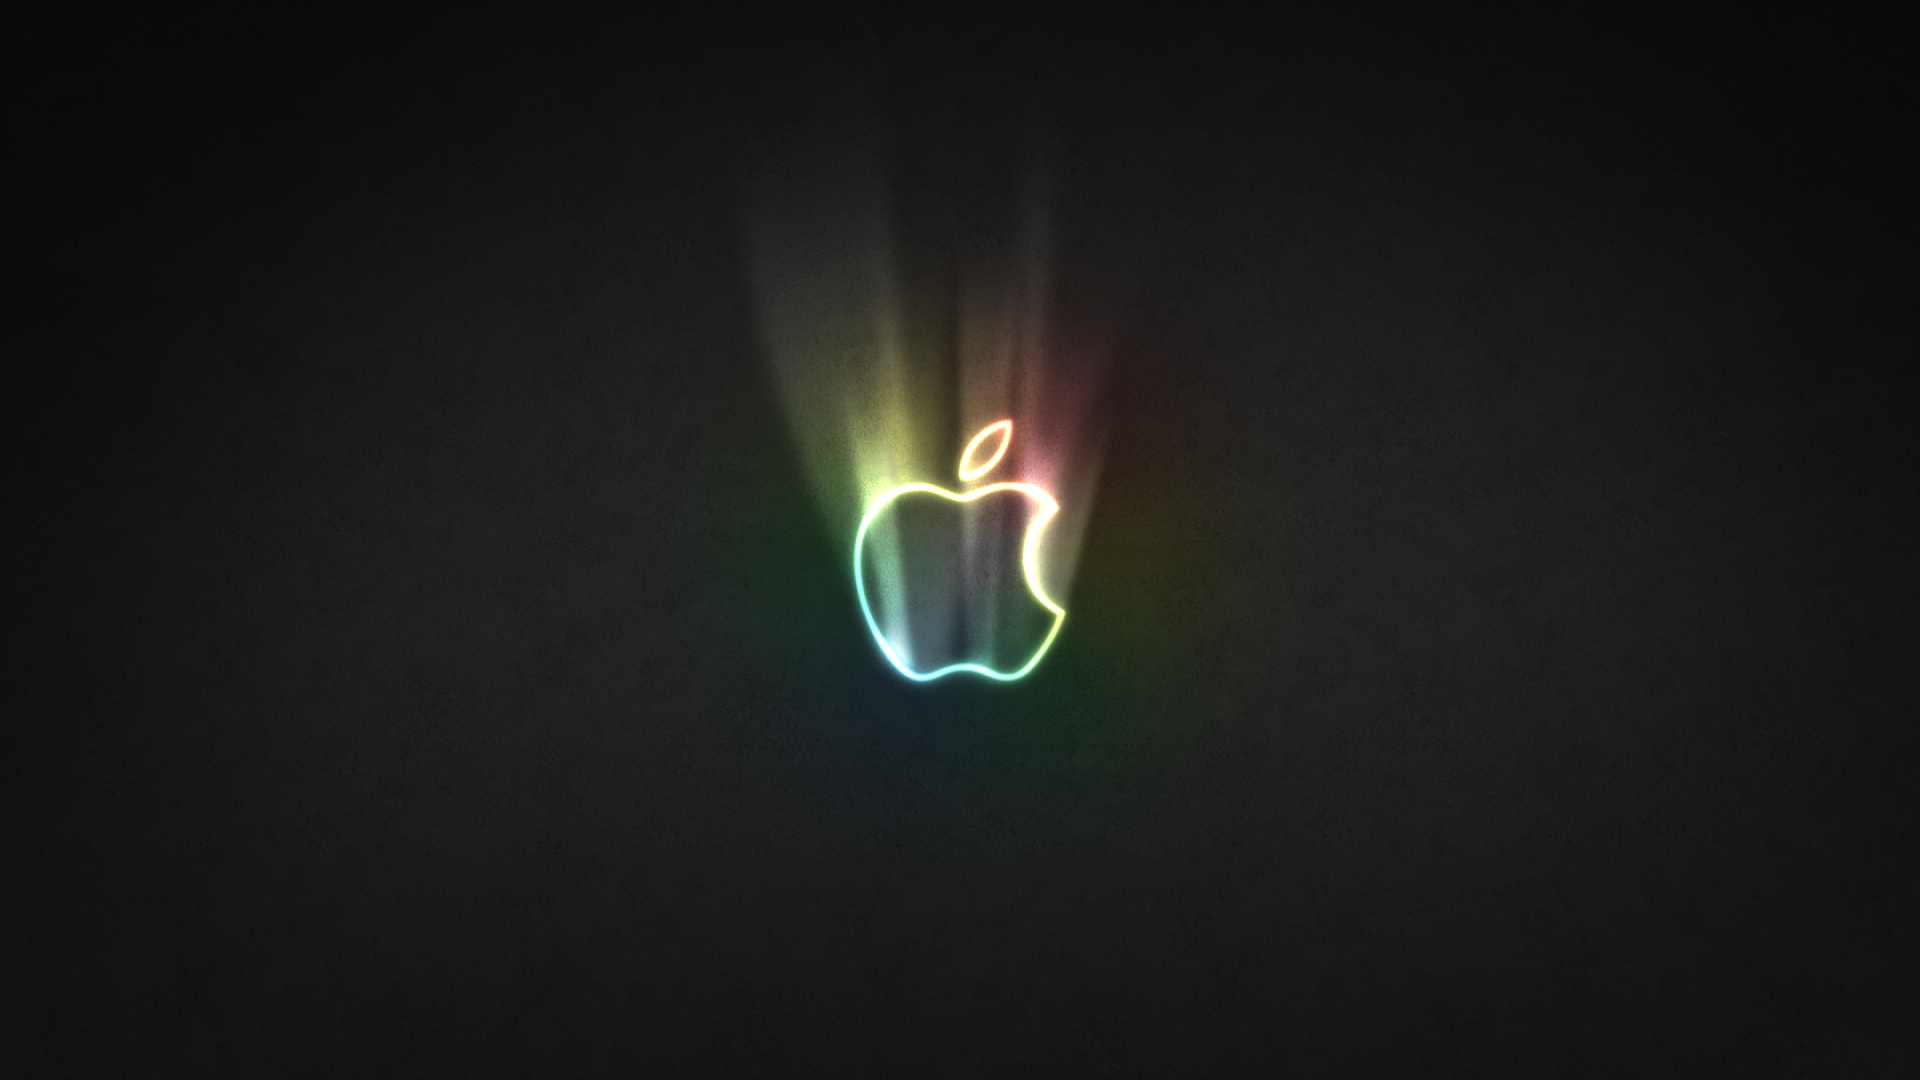 Apple-Glowing-Logo-Wallpaper